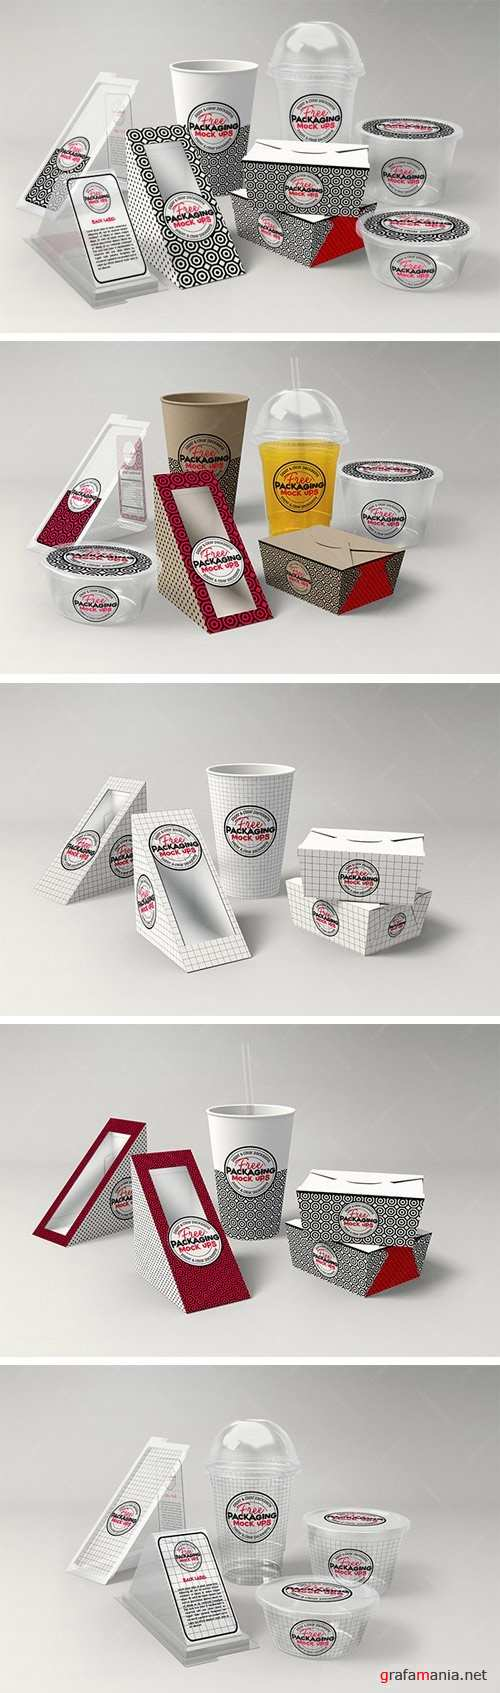 2-in-1 Mock Up Template Fast Food DELI Set Branding